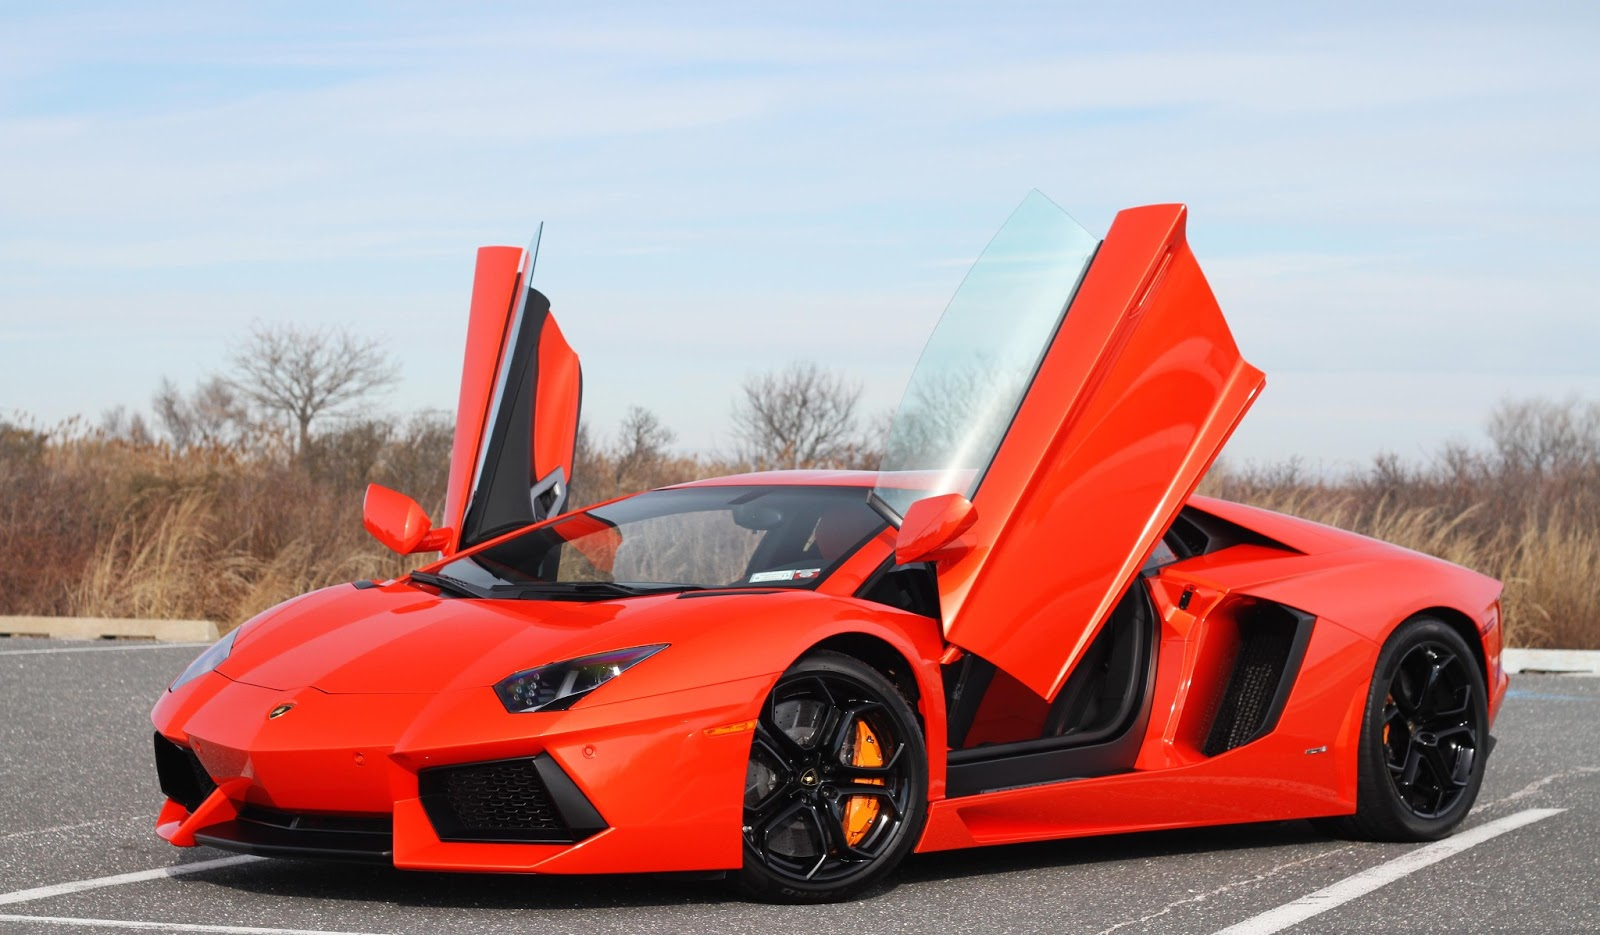 lamborghini aventador lambo aventador technology world. Black Bedroom Furniture Sets. Home Design Ideas